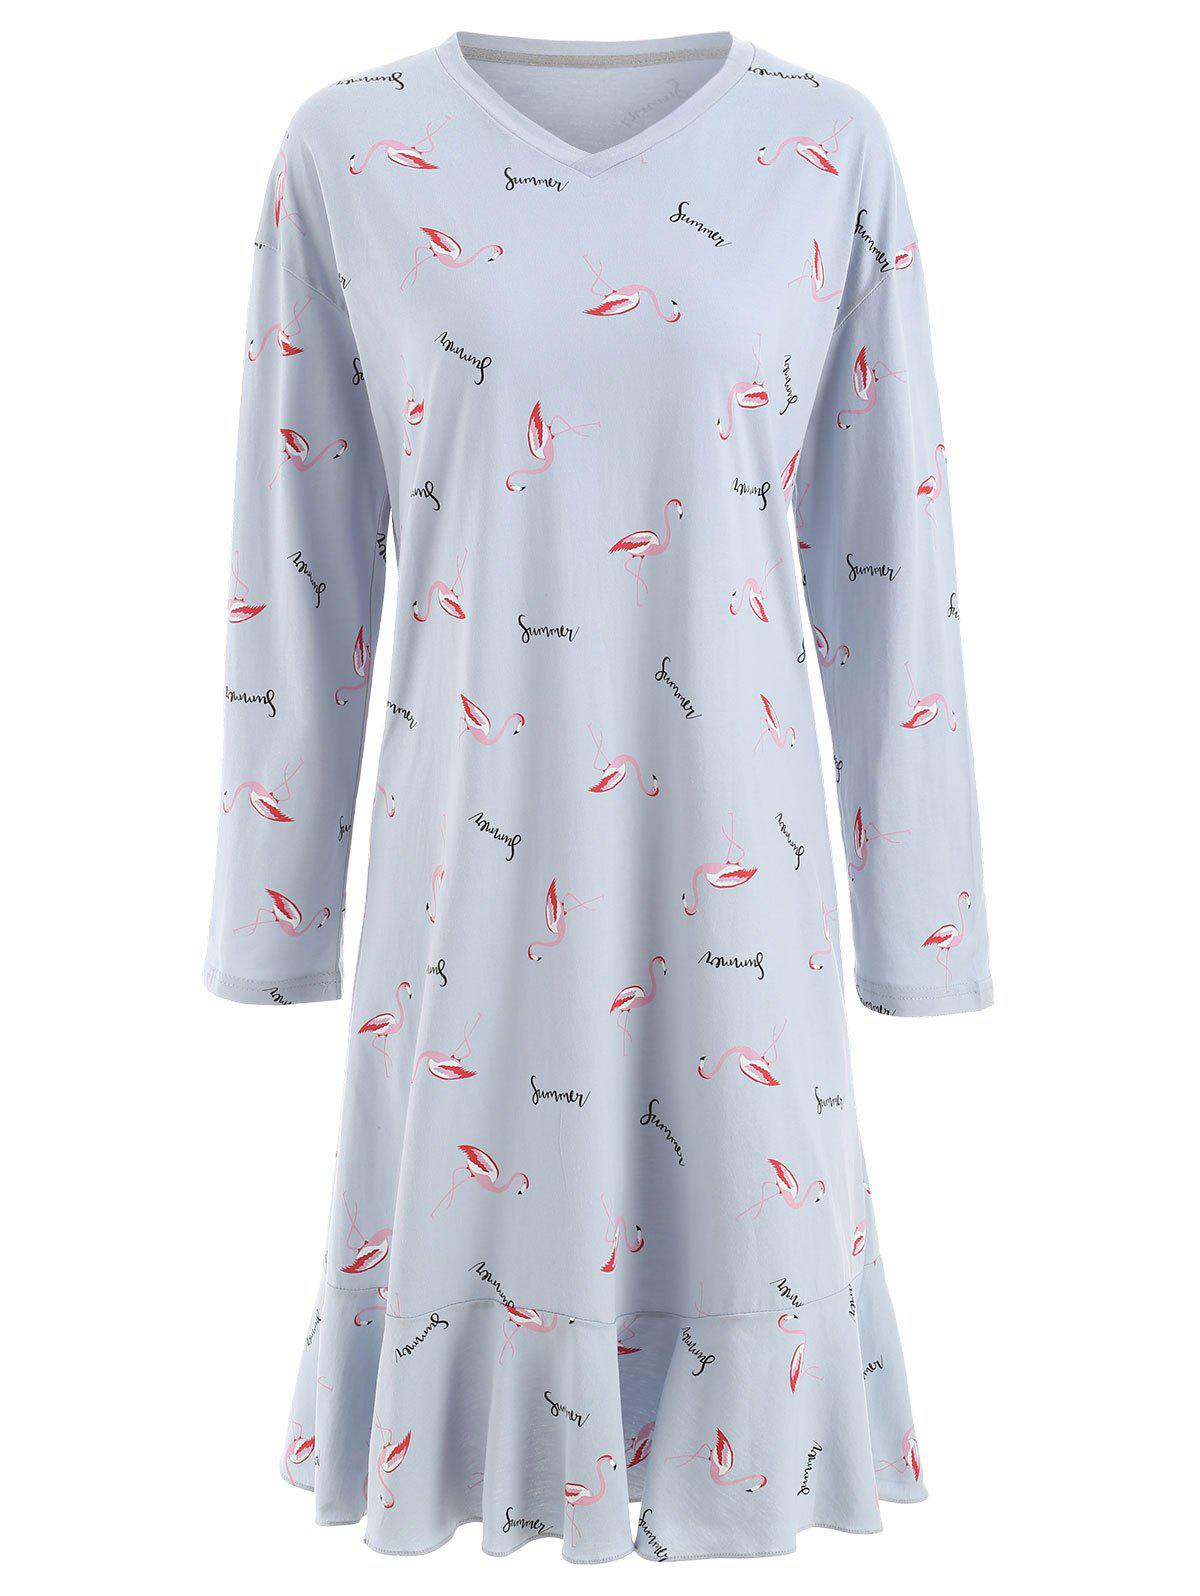 Flamingo Print Sleeping Dress - PASTEL BLUE L